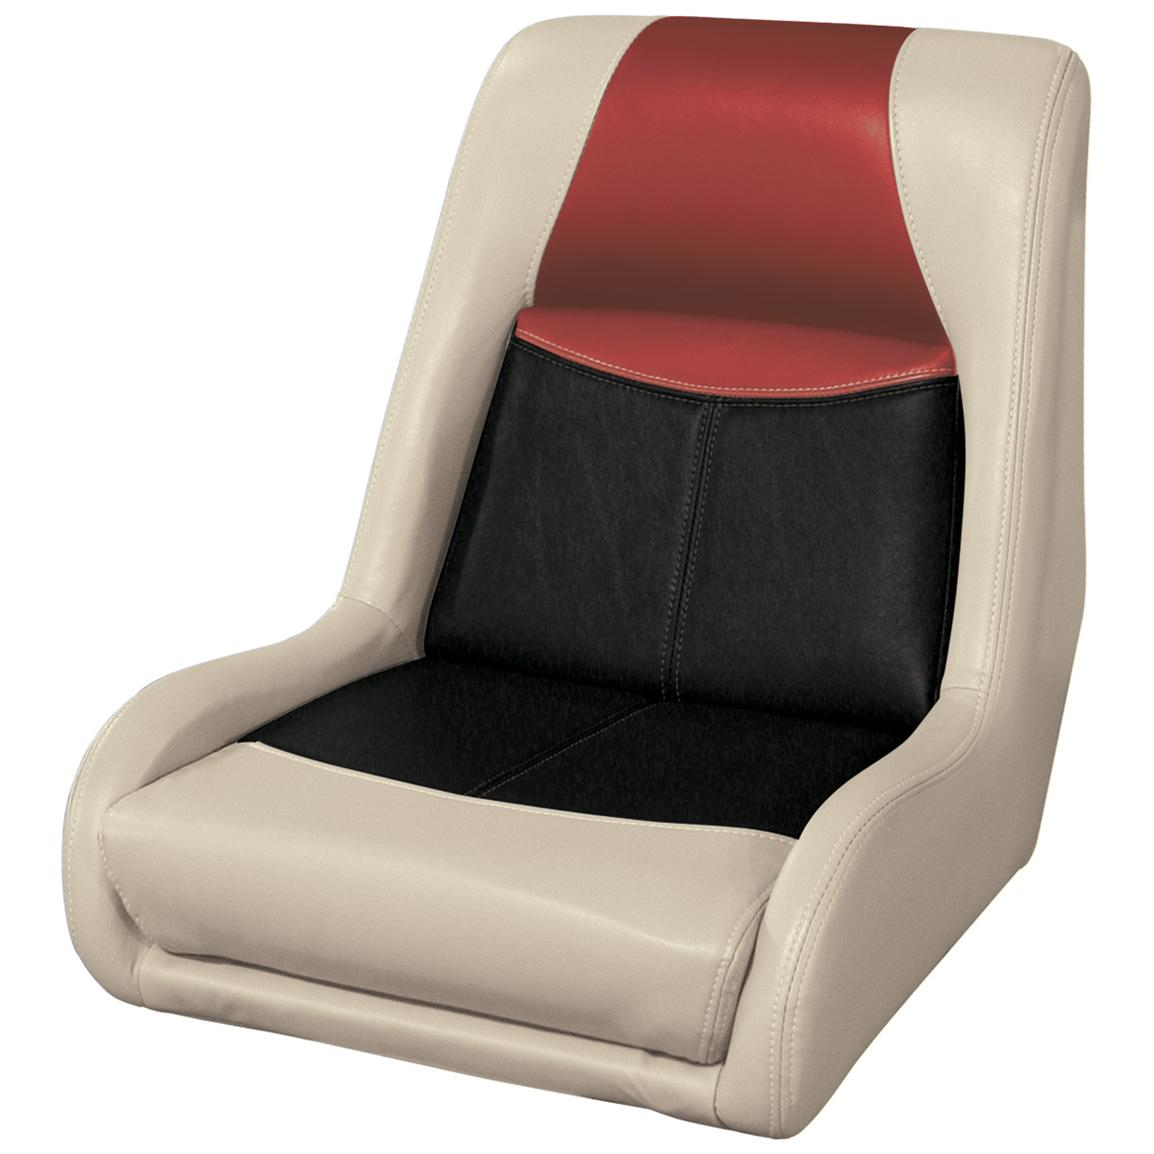 Wise® Blast-Off™ Series Swept Back Bass Bucket Seat, Mushroom / Black / Red